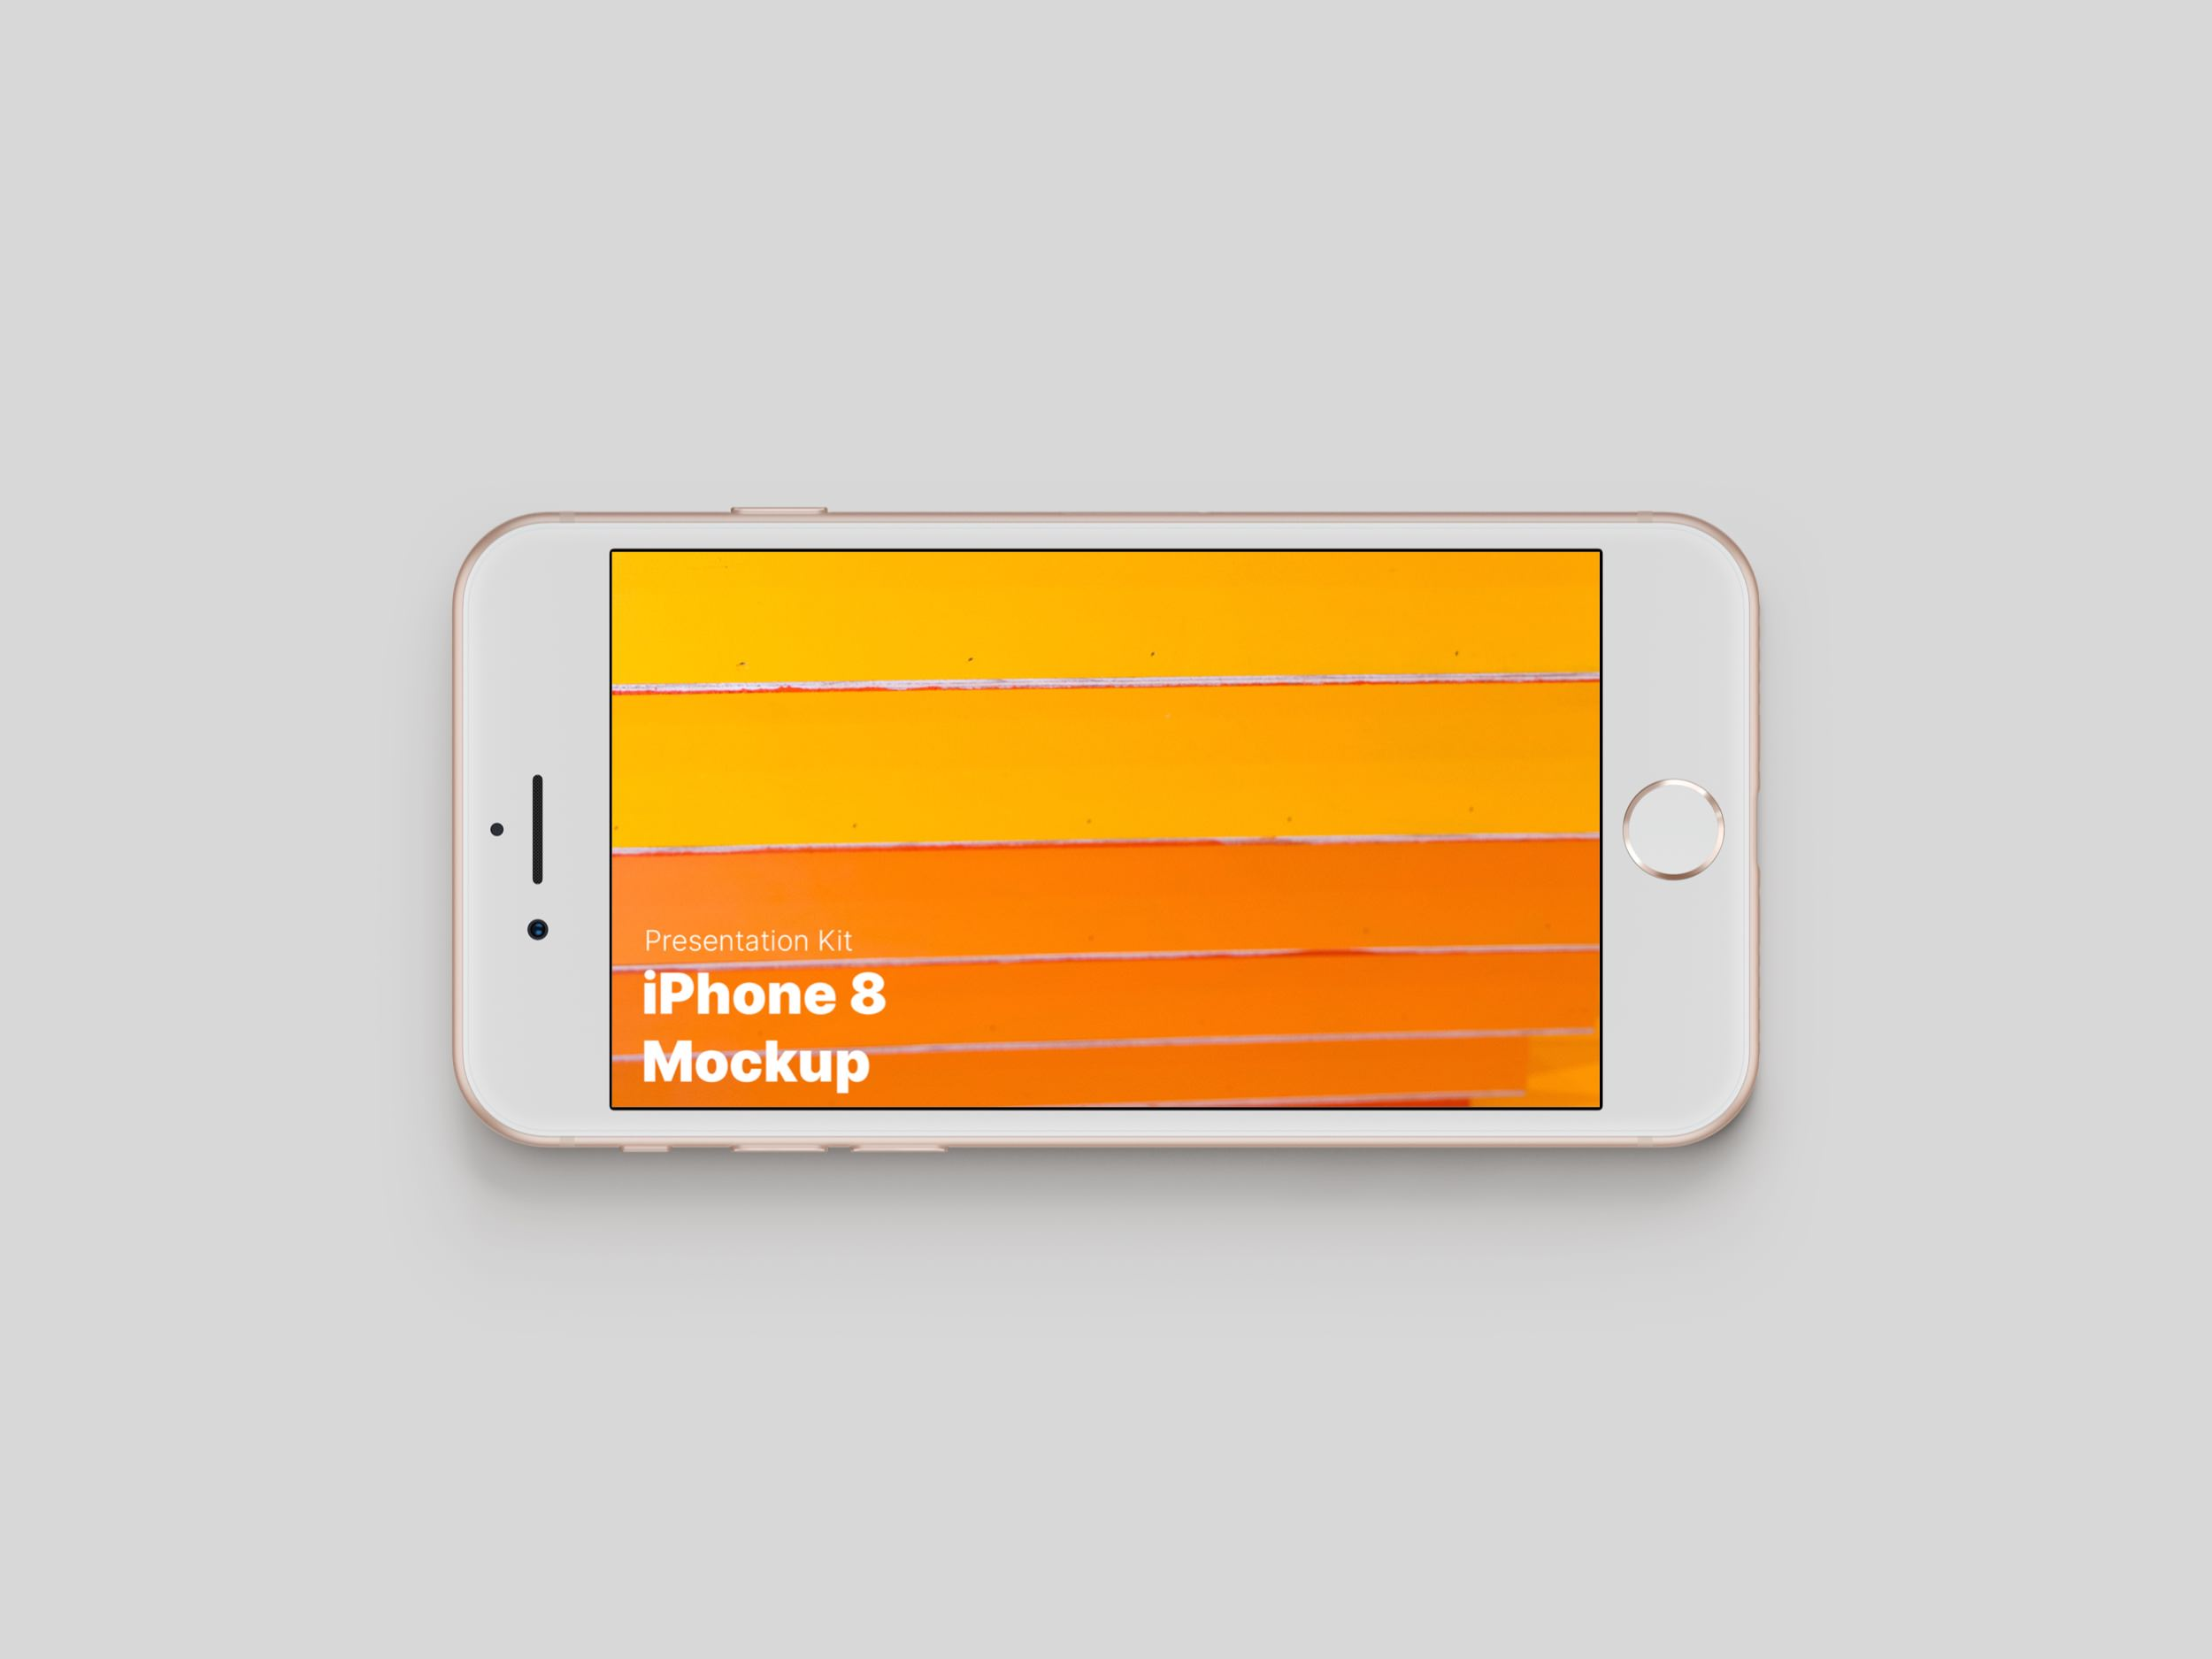 Download Apple iPhone 8 Mockup for Sketch, Photoshop and Figma